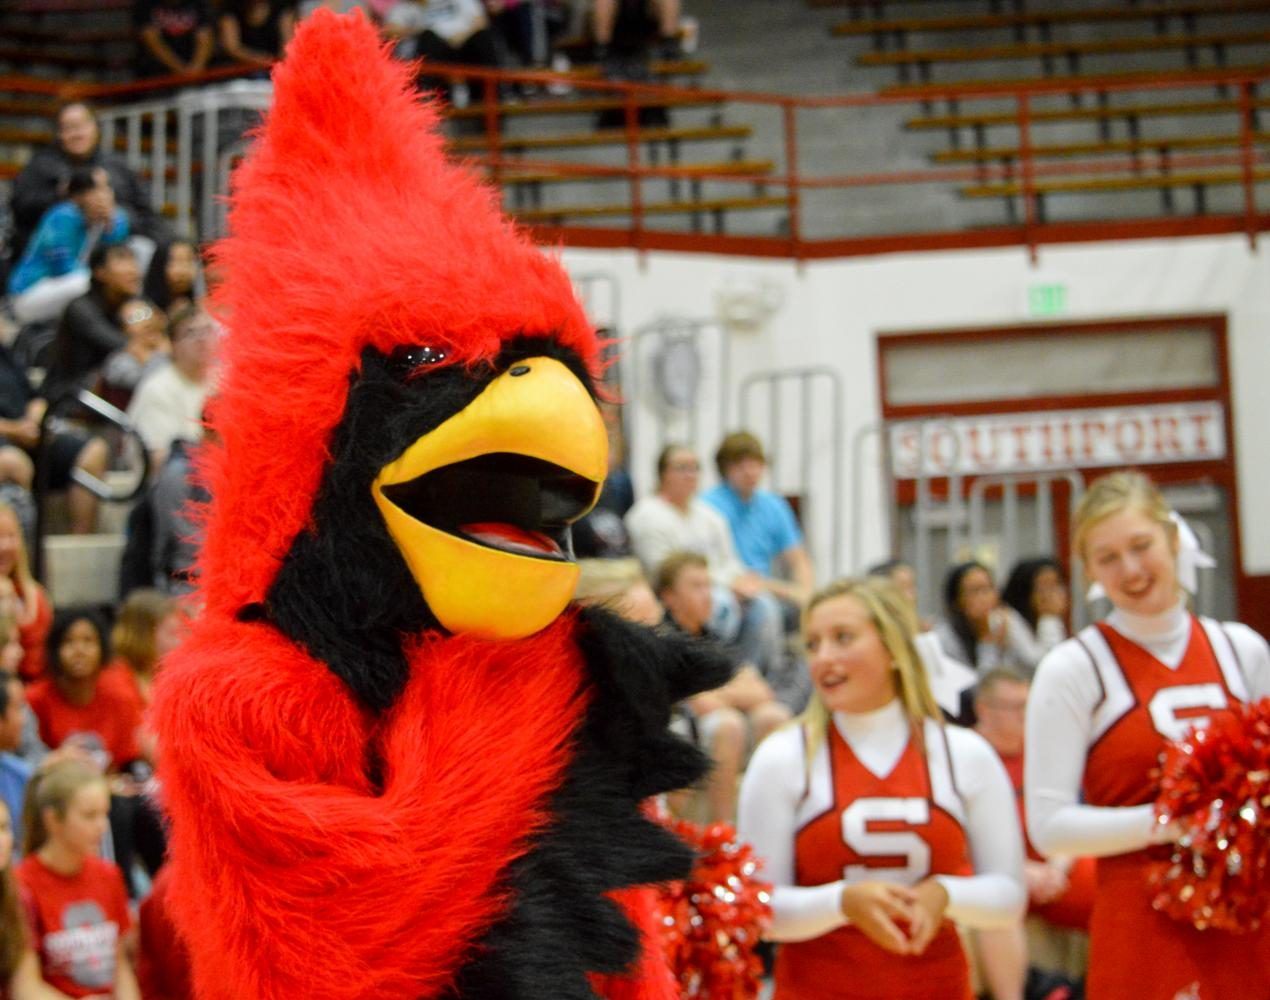 The+SHS+cardinal+greets+seniors+at+the+end+of+the+cheer+tunnel+at+the+Fall+pep+session+on+Friday%2C+Sept.+1.+The+pep+session+occurred+before+the+football+game+against+Perry+Meridian.+